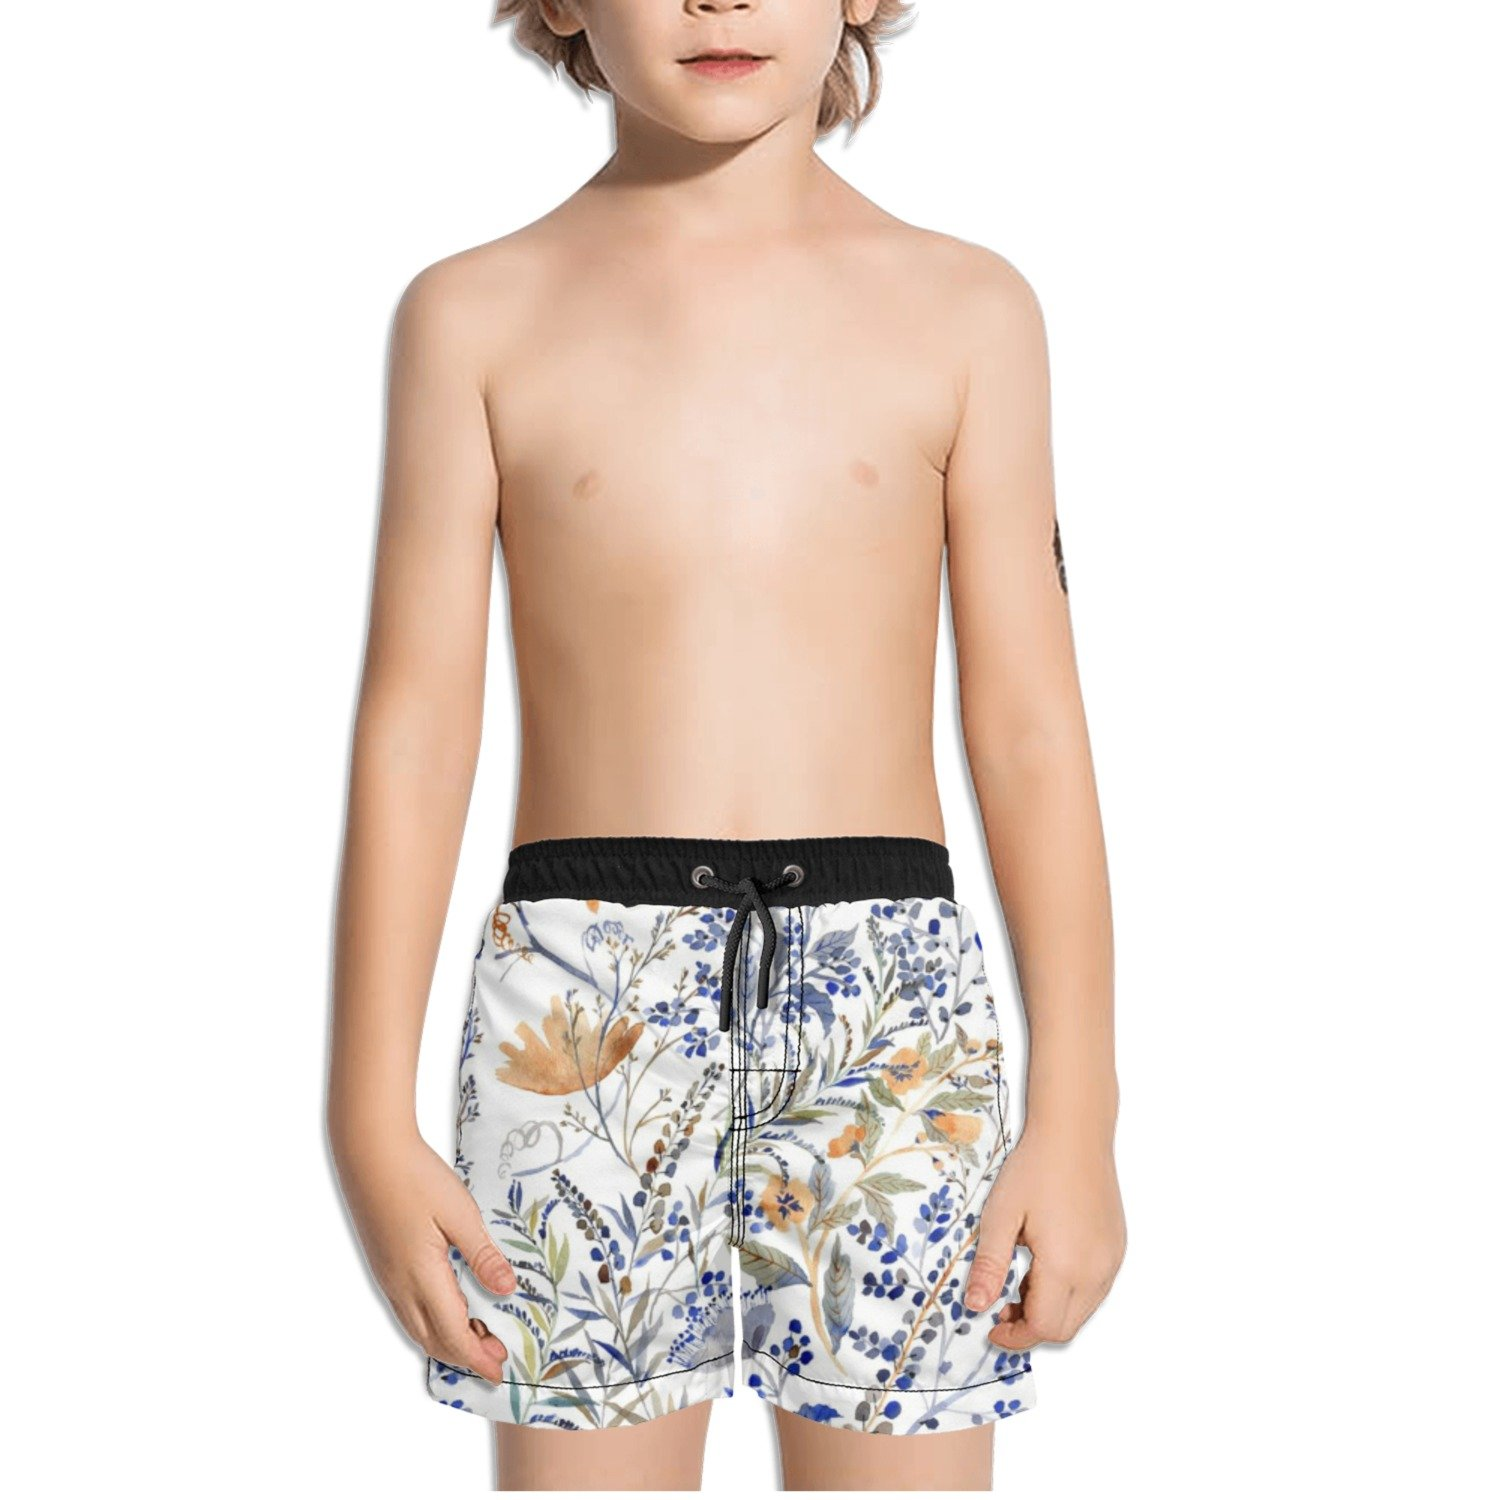 Ouxioaz Boys Swim Trunk Floral Watercolor Leaves Beach Board Shorts